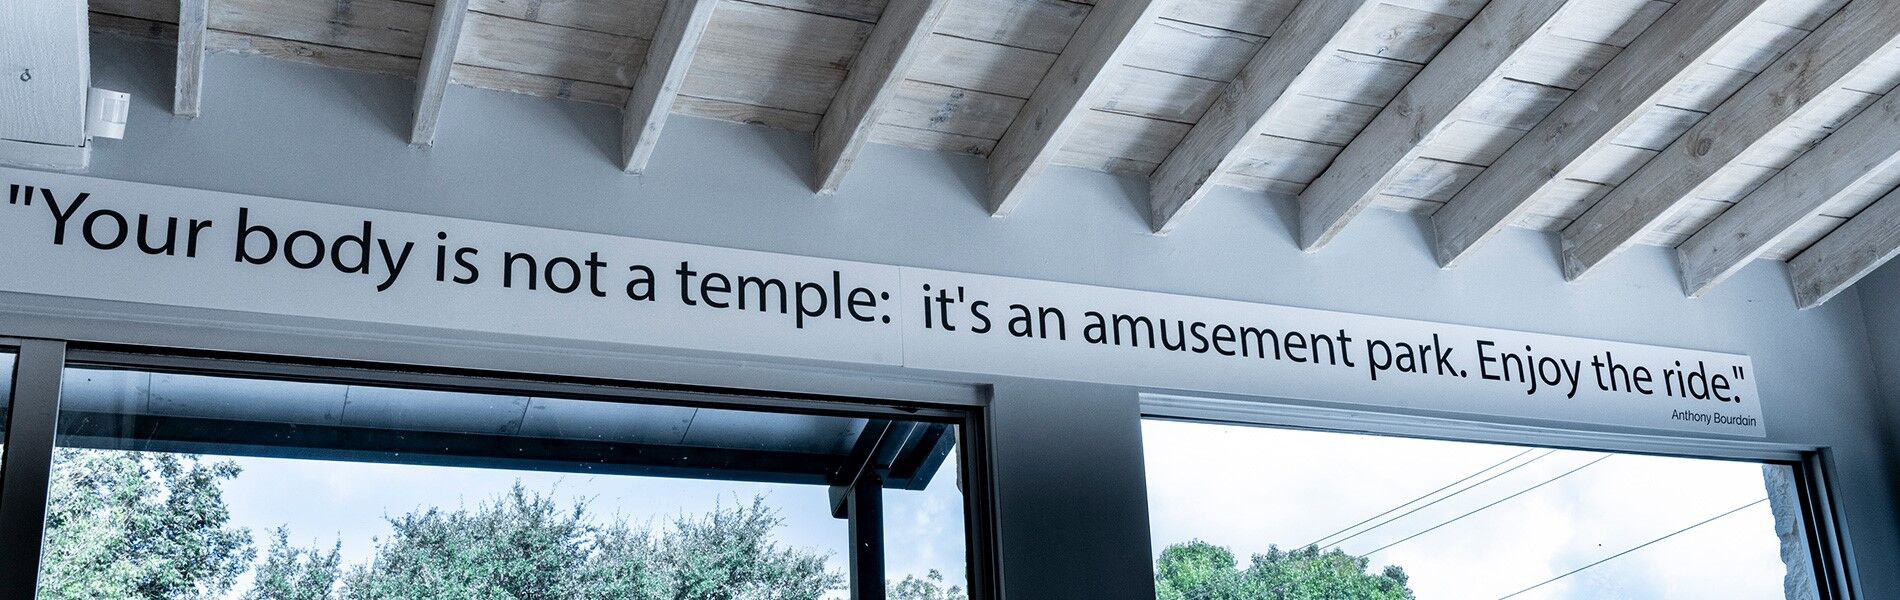 "Sign above a door that says ""Your body is not a temple: it's an amusement park. Enjoy the ride."""